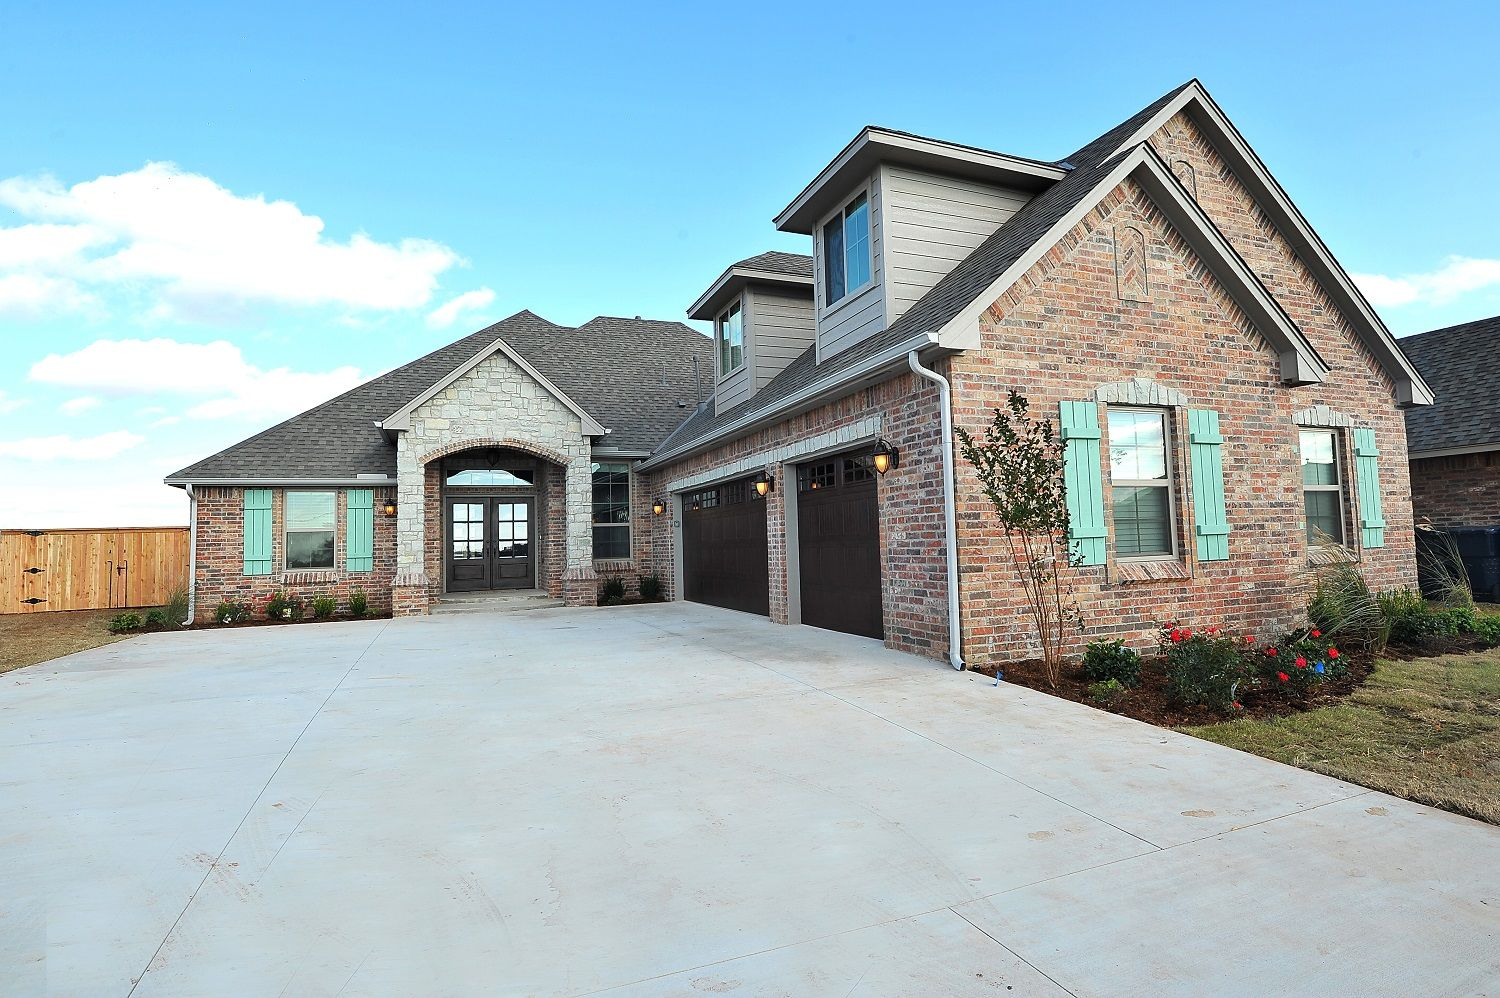 Garage Builders Okc Love This Look The Double Front Door And The Side Entry Garage